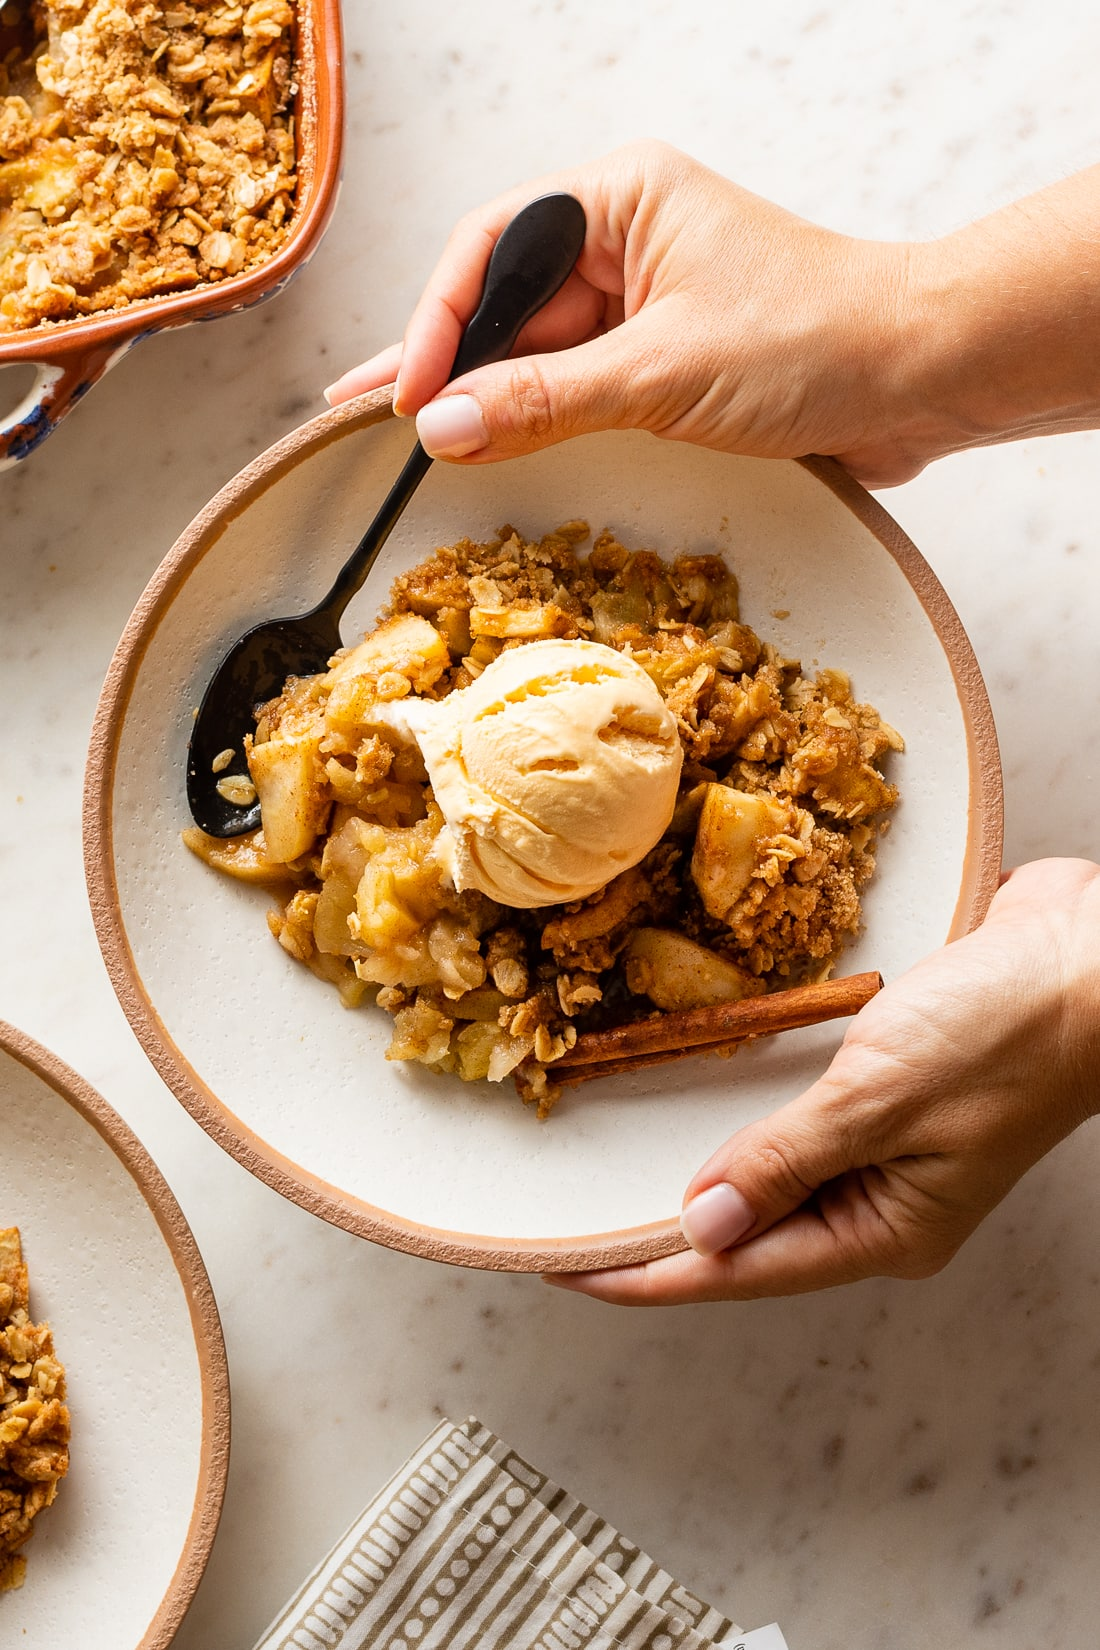 Hands holding a bowl of apple crisp with ice cream, caramel, and a spoon ready to eat!